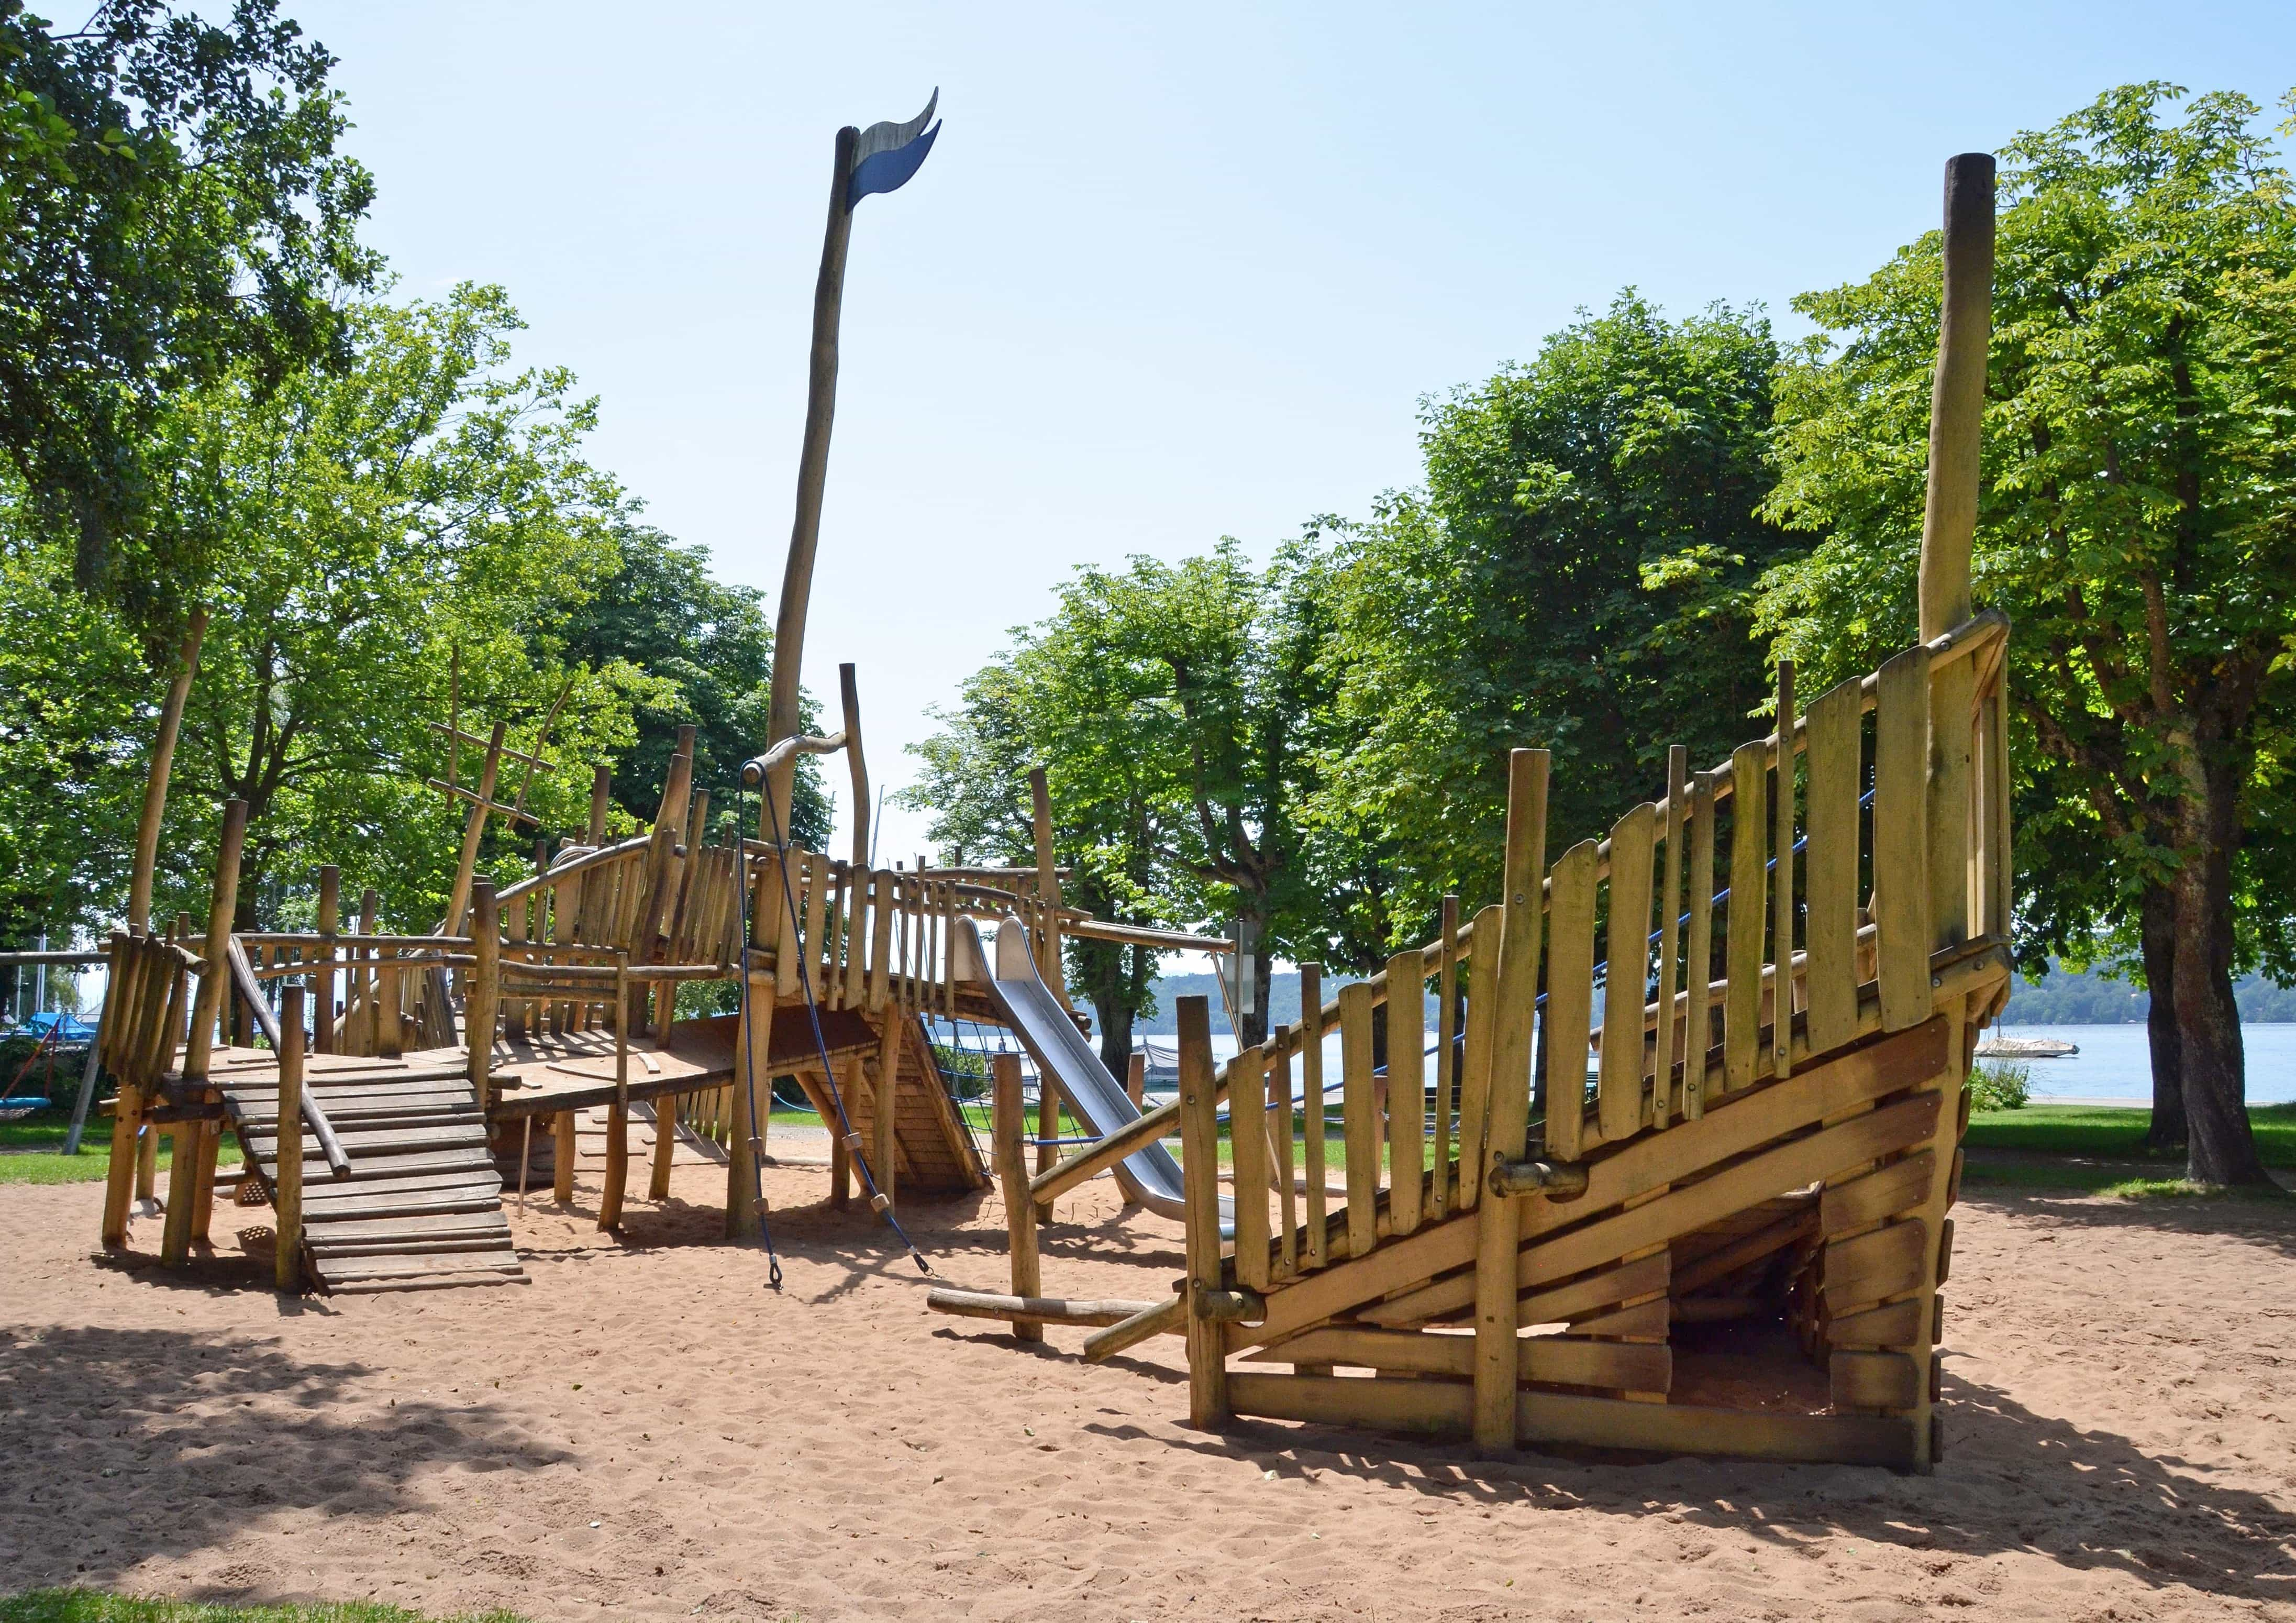 wood, playground, summer season, urban area, region, park, location, tree, outdoor